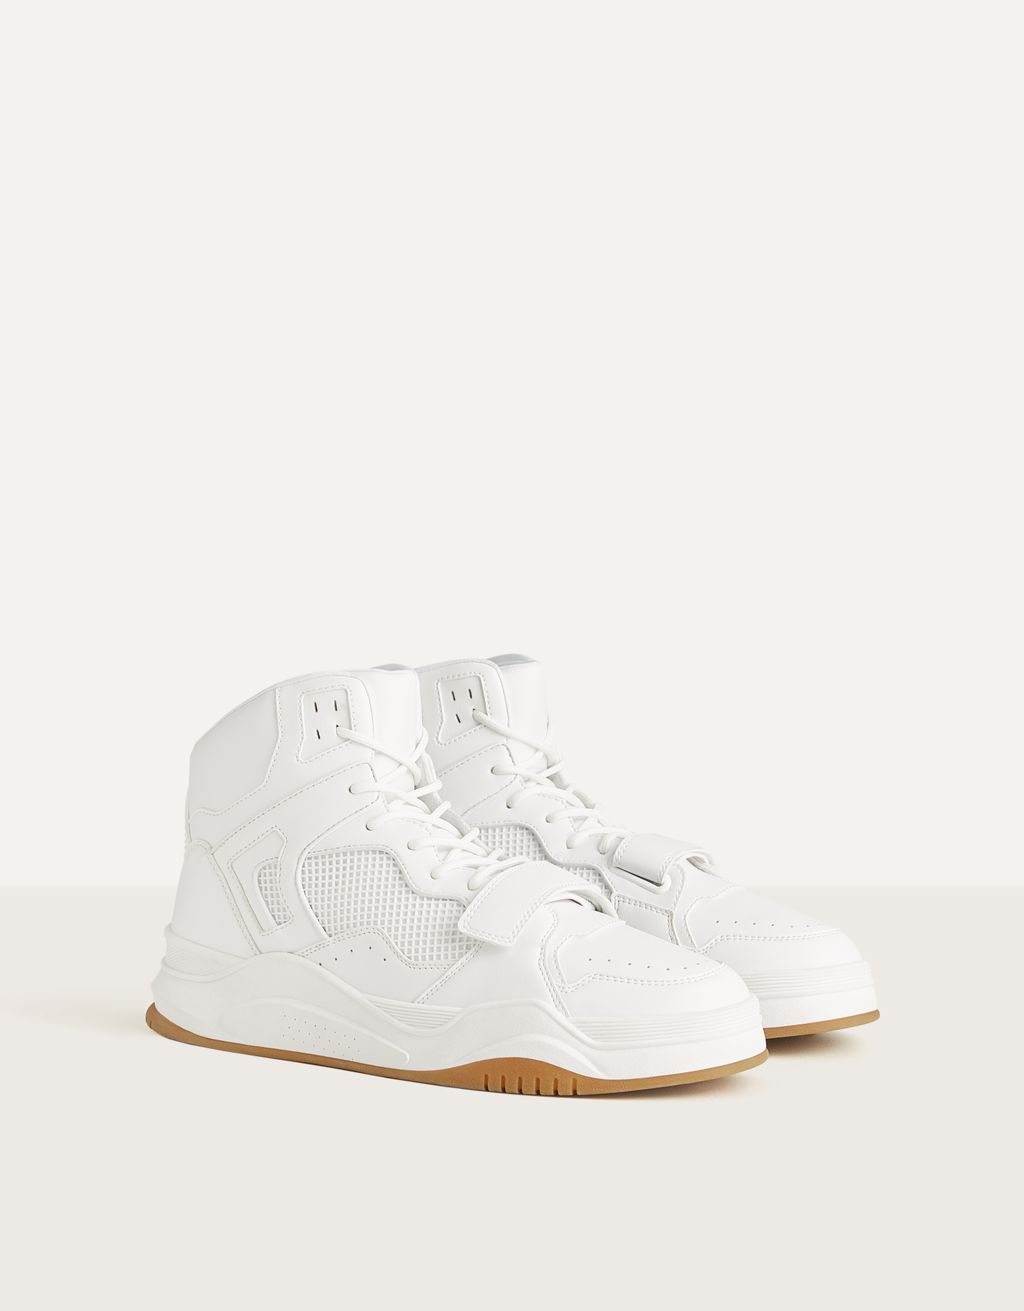 Gecombineerde high-top herensneaker